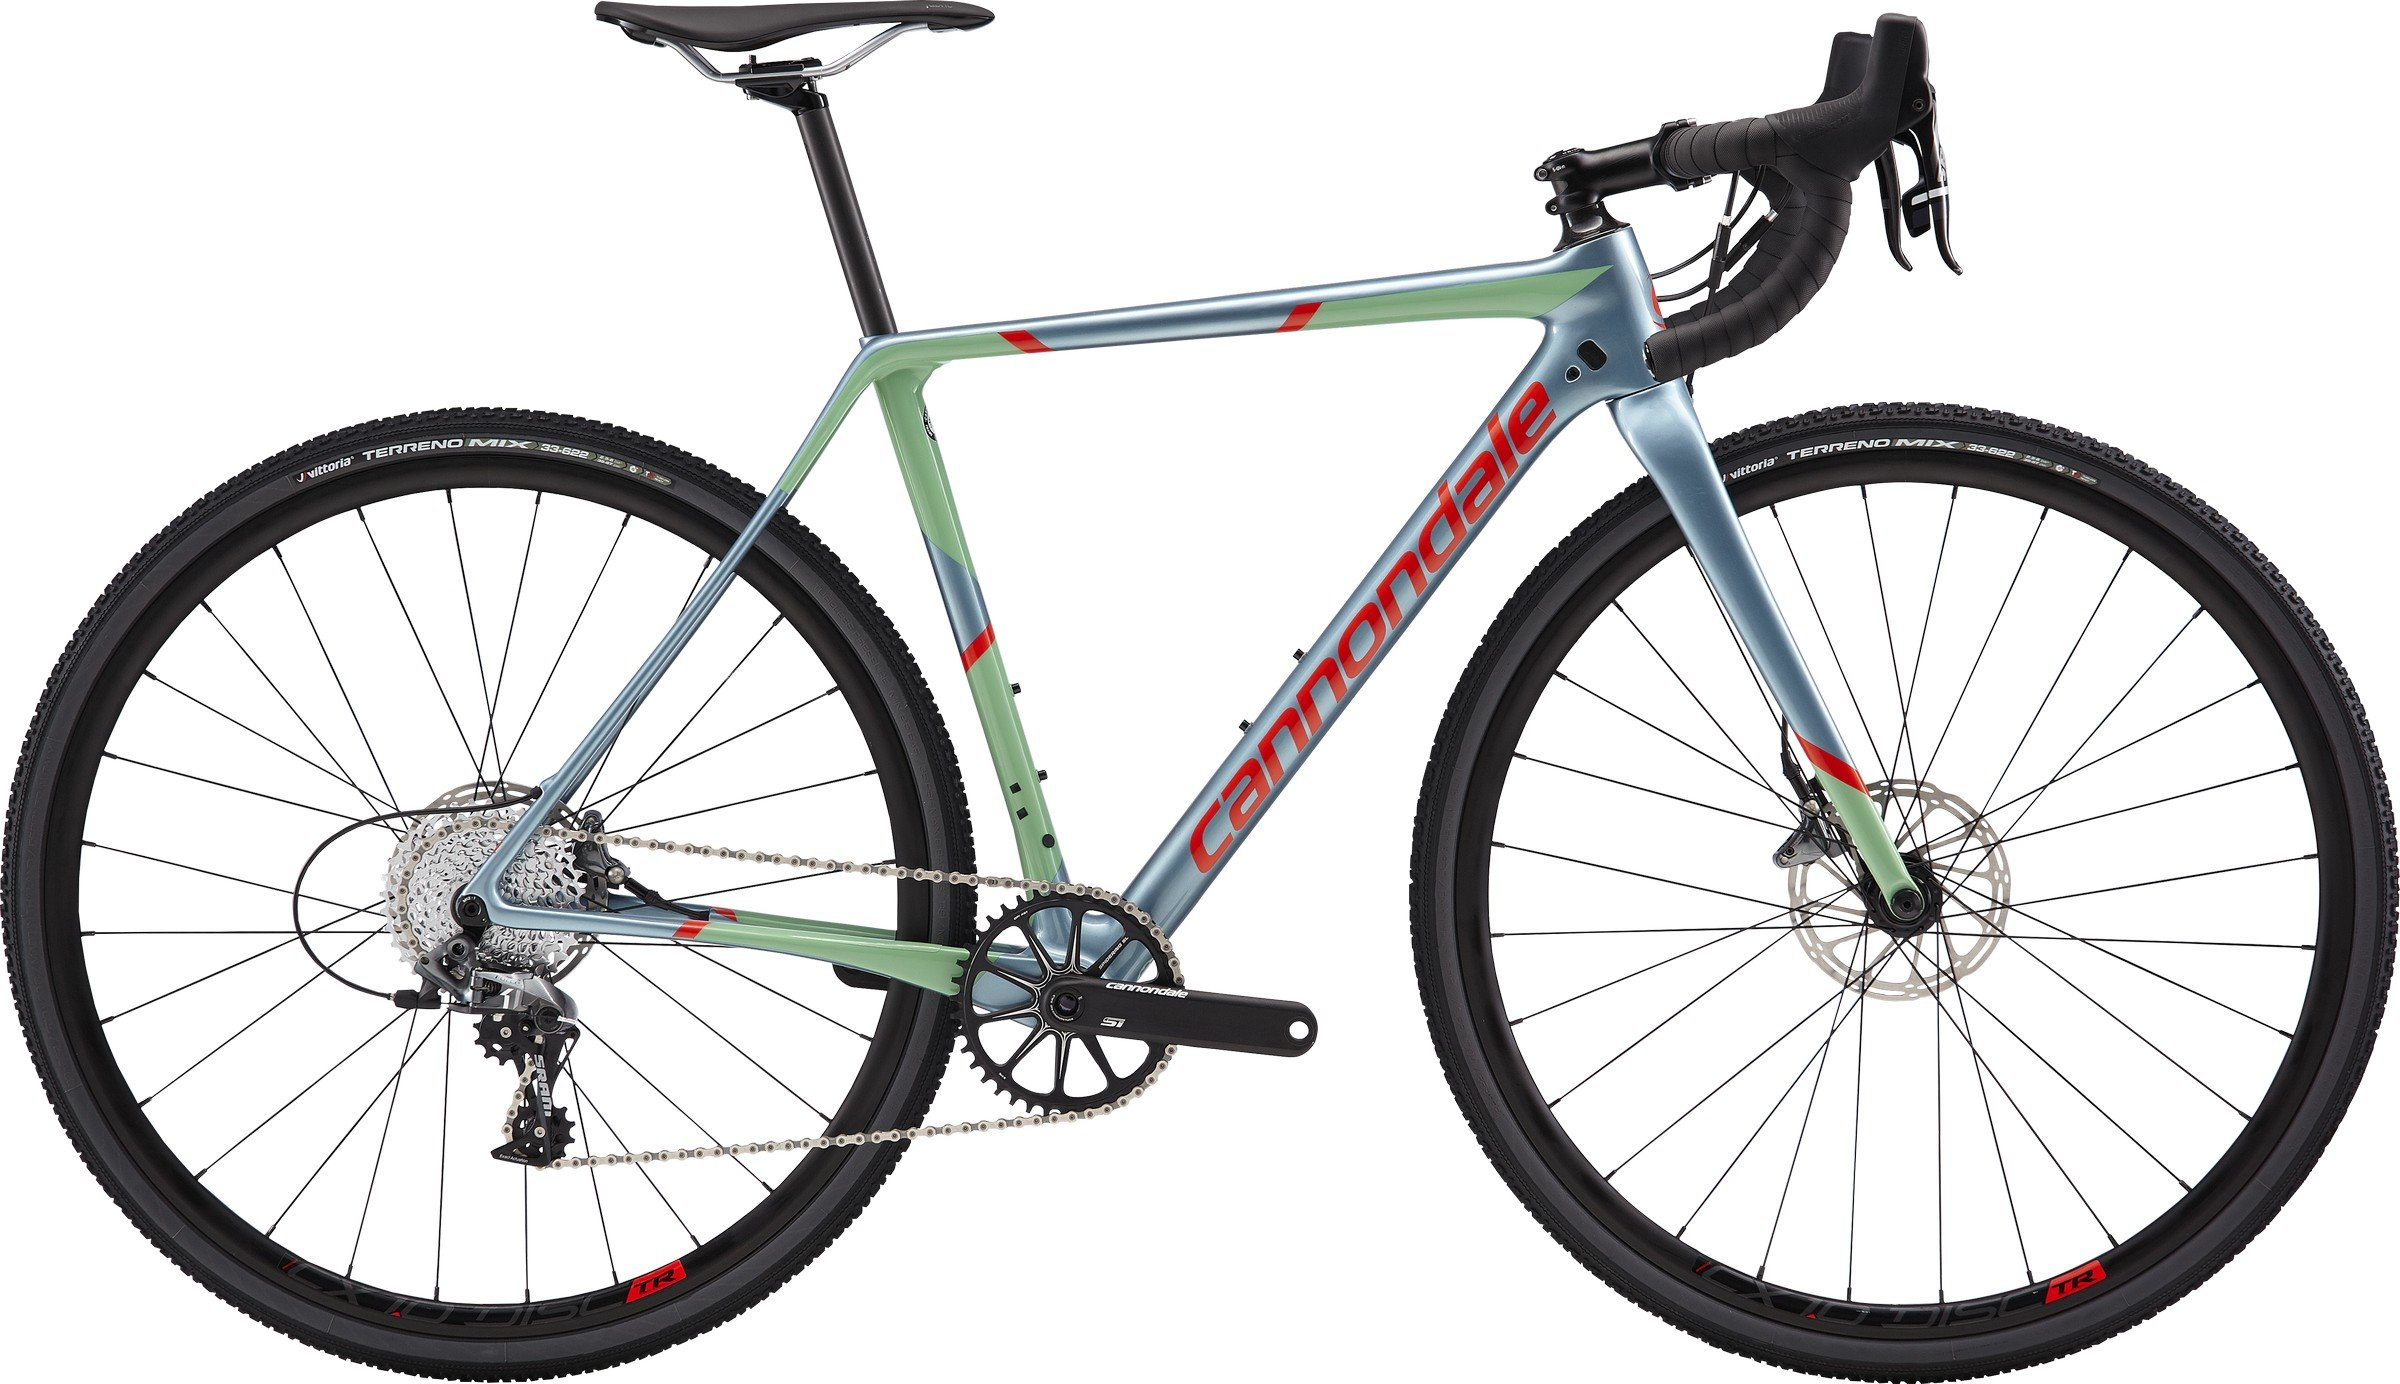 973b15746c0 Cannondale SuperX Women's Force 1 - Bike Shop Sid's Bikes NYC New ...